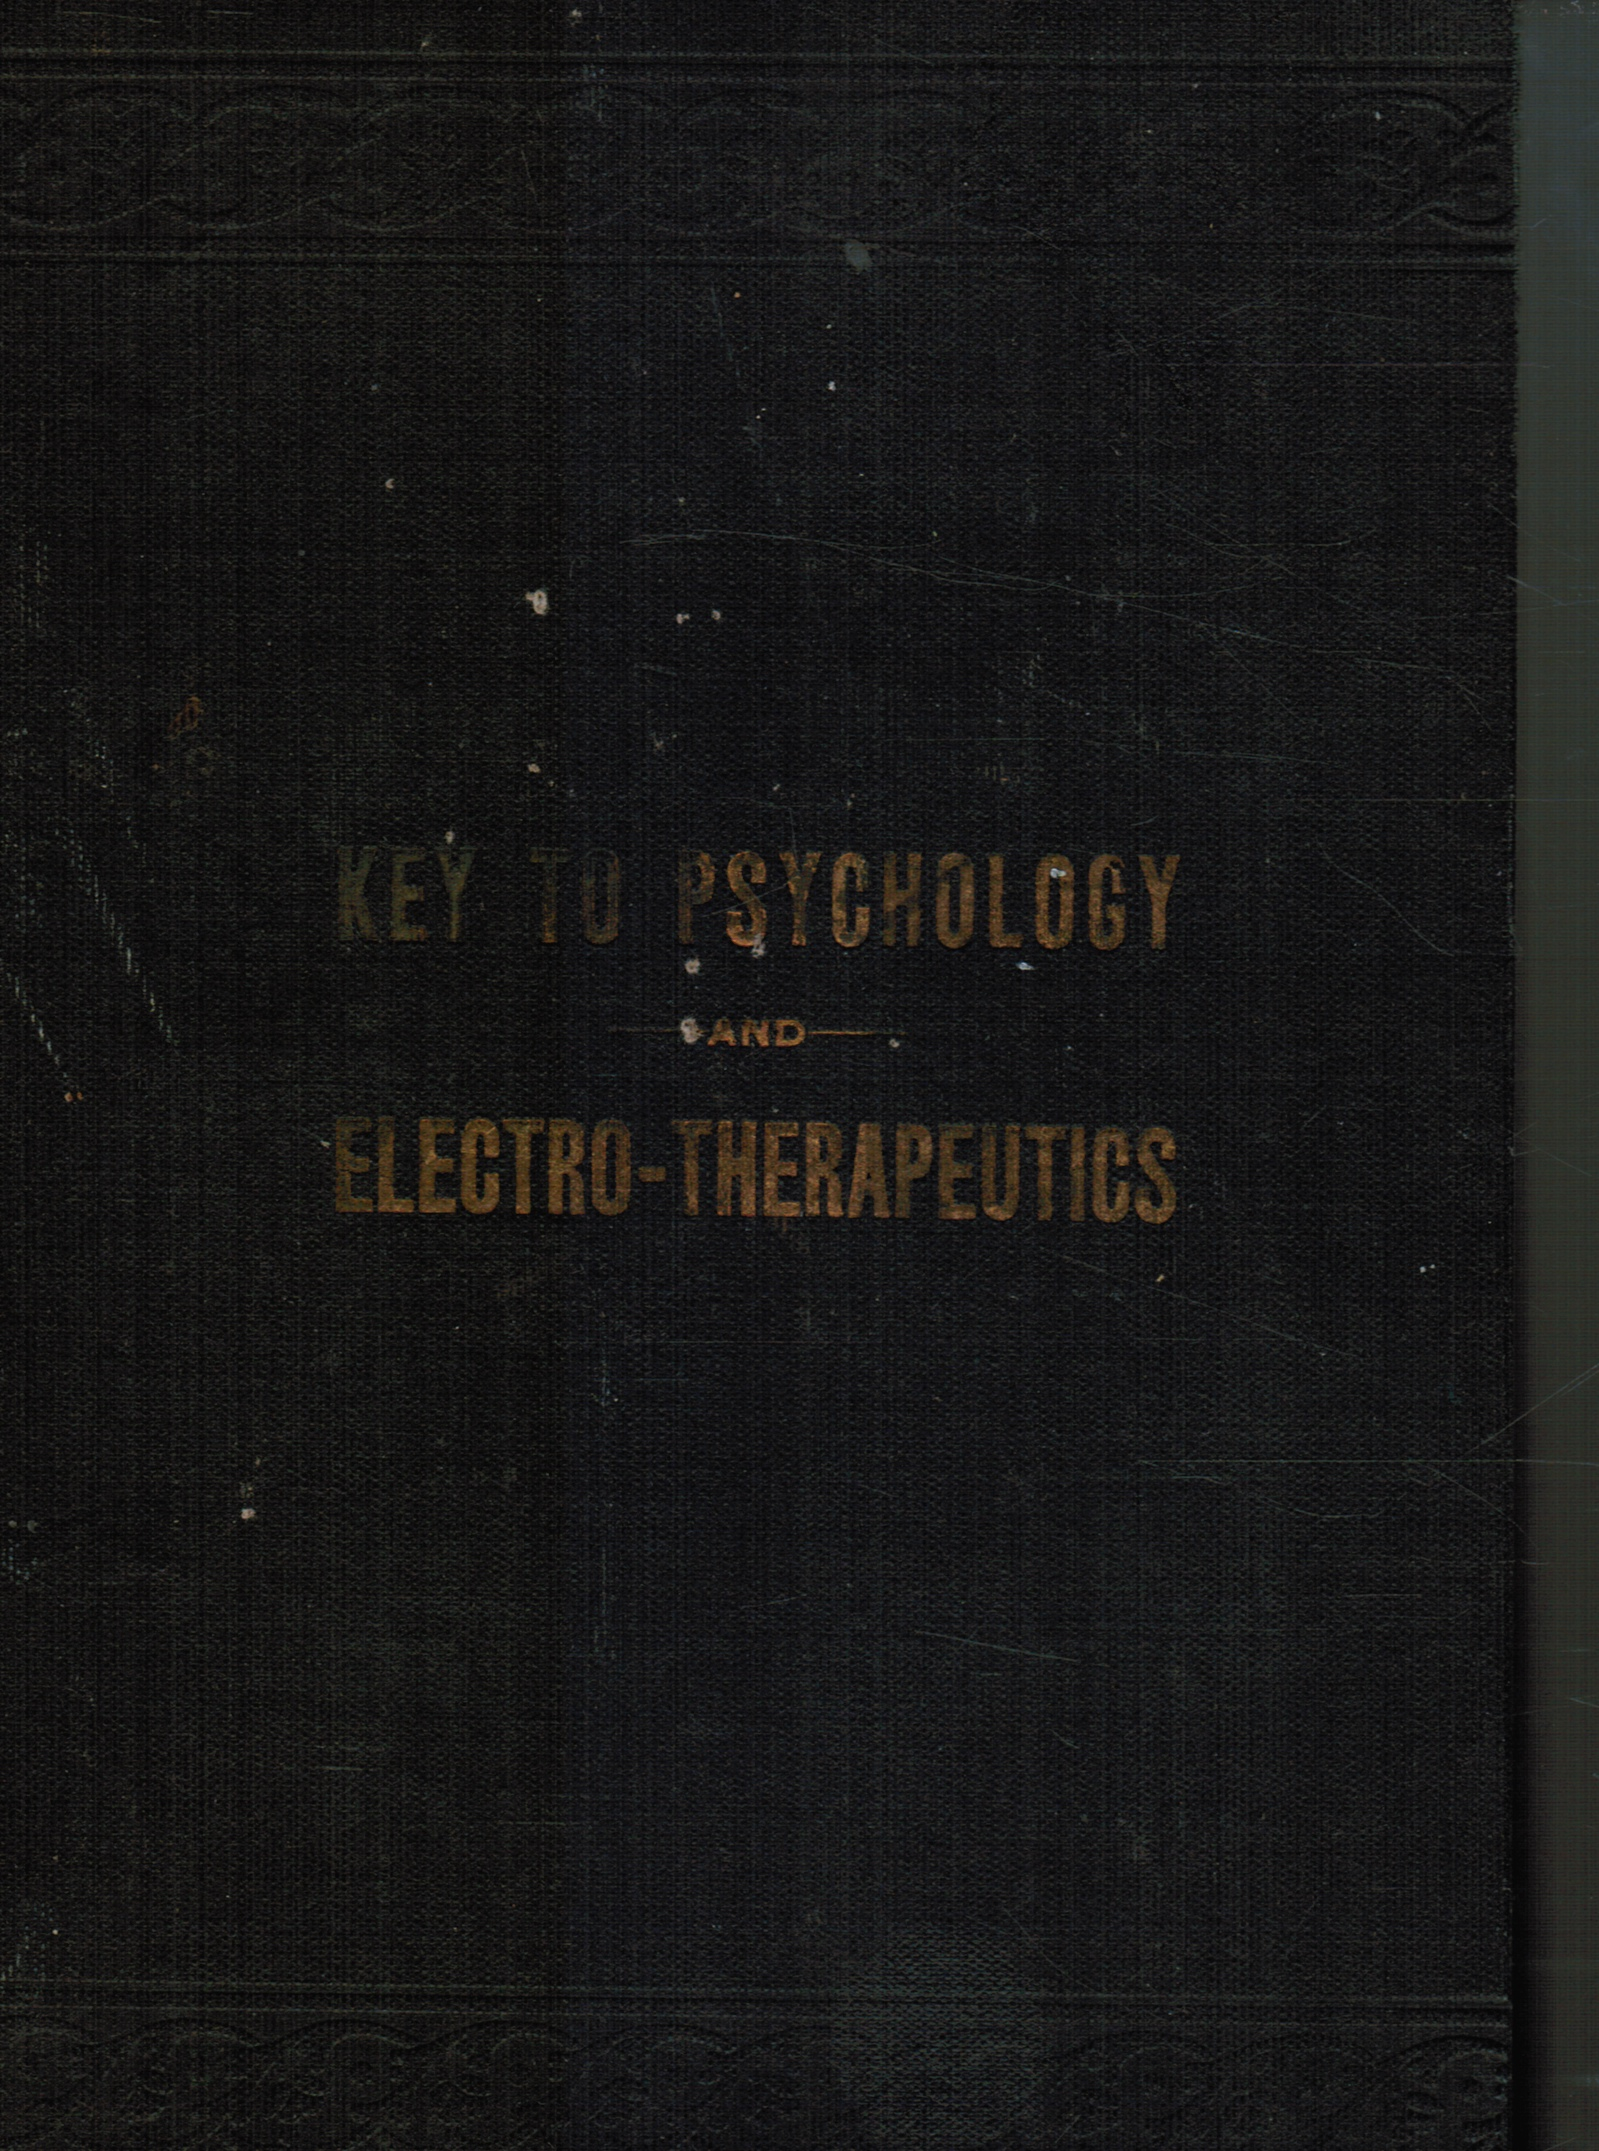 Image for Seymour's key to psychology and electro-therapeutics